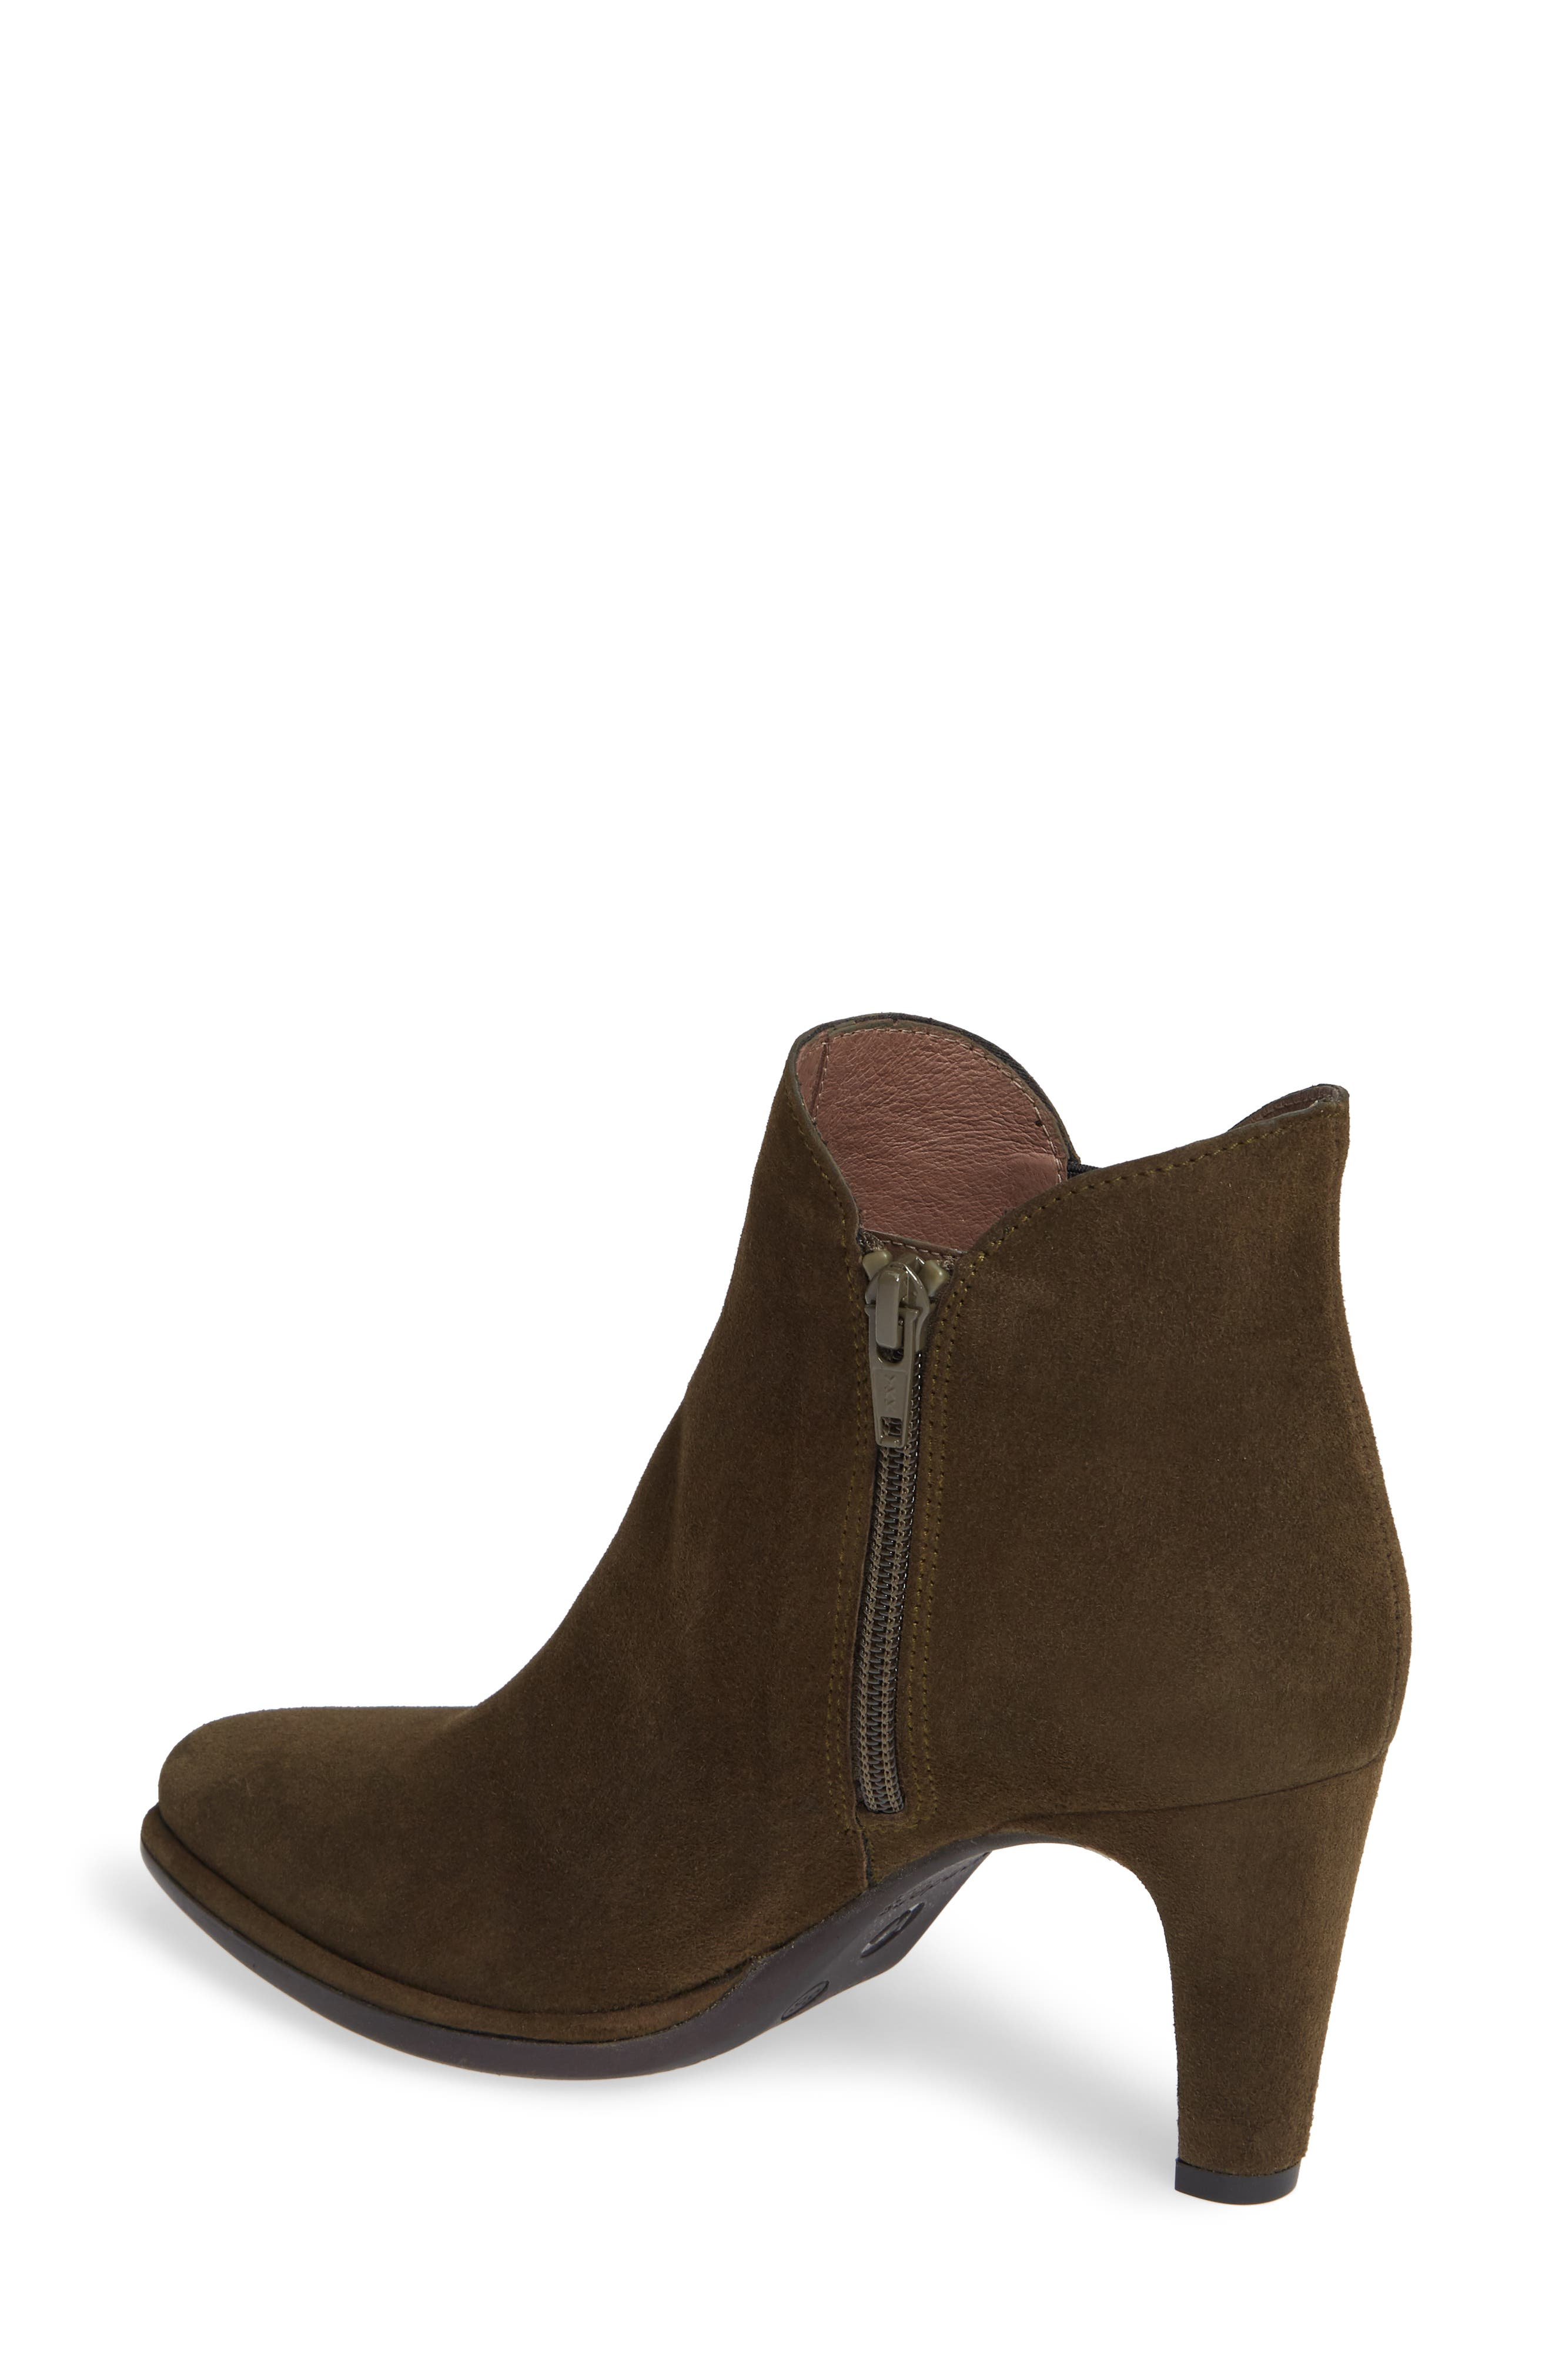 Chelsea Boot,                             Alternate thumbnail 2, color,                             MILITARY GREEN SUEDE